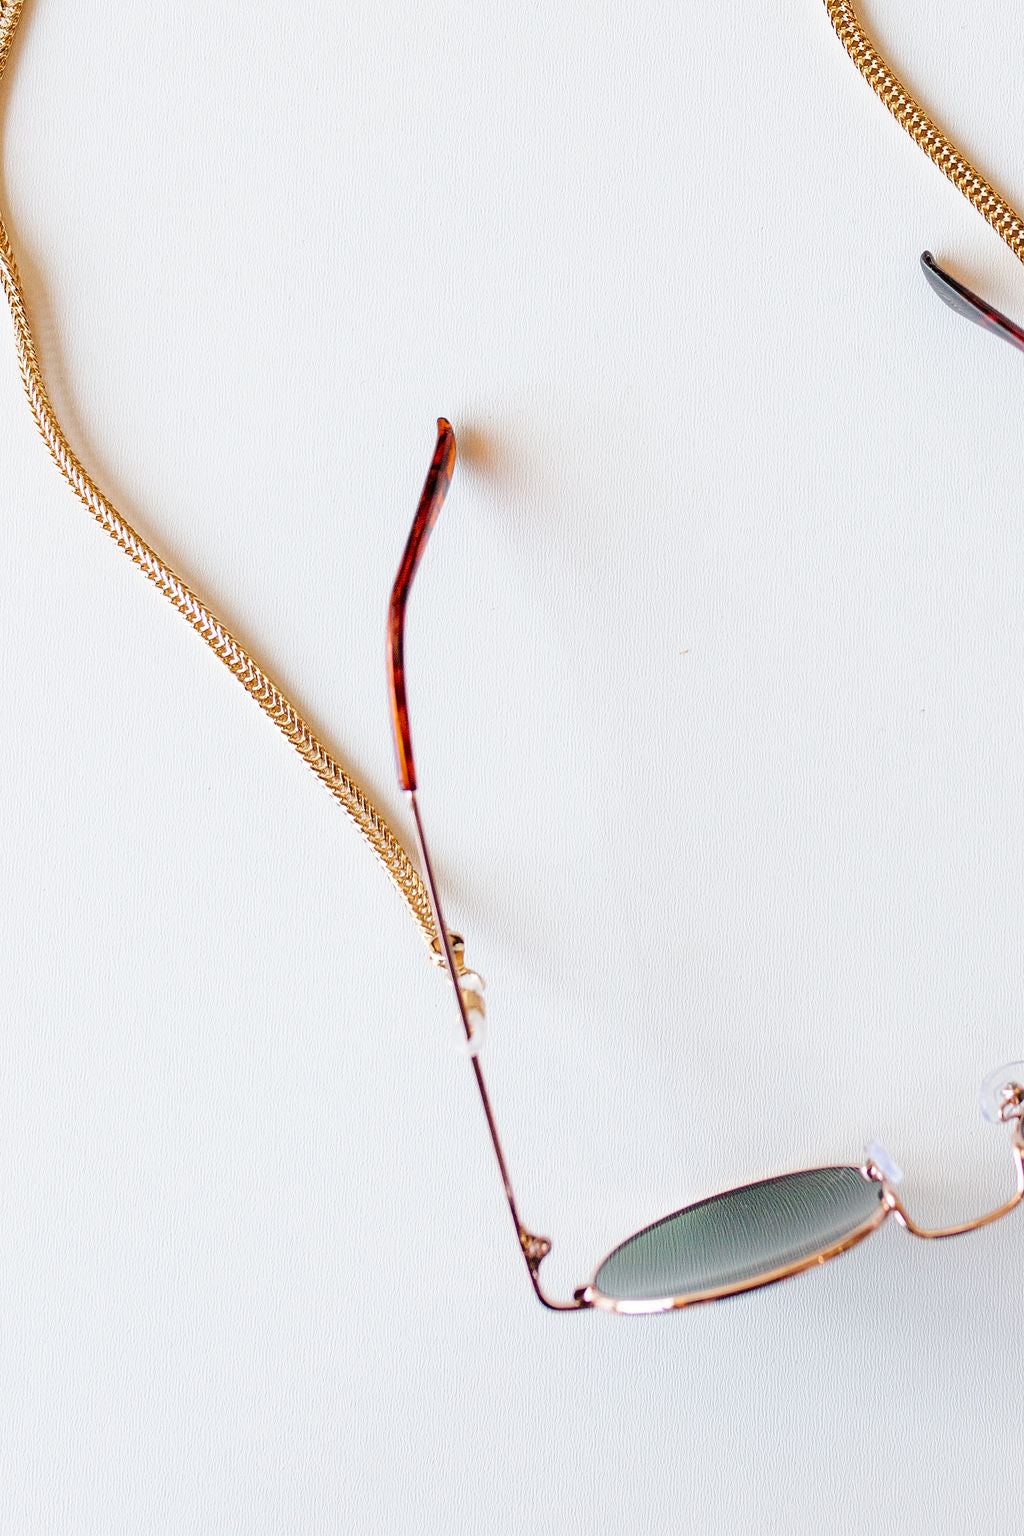 mode, simple sunglass chain